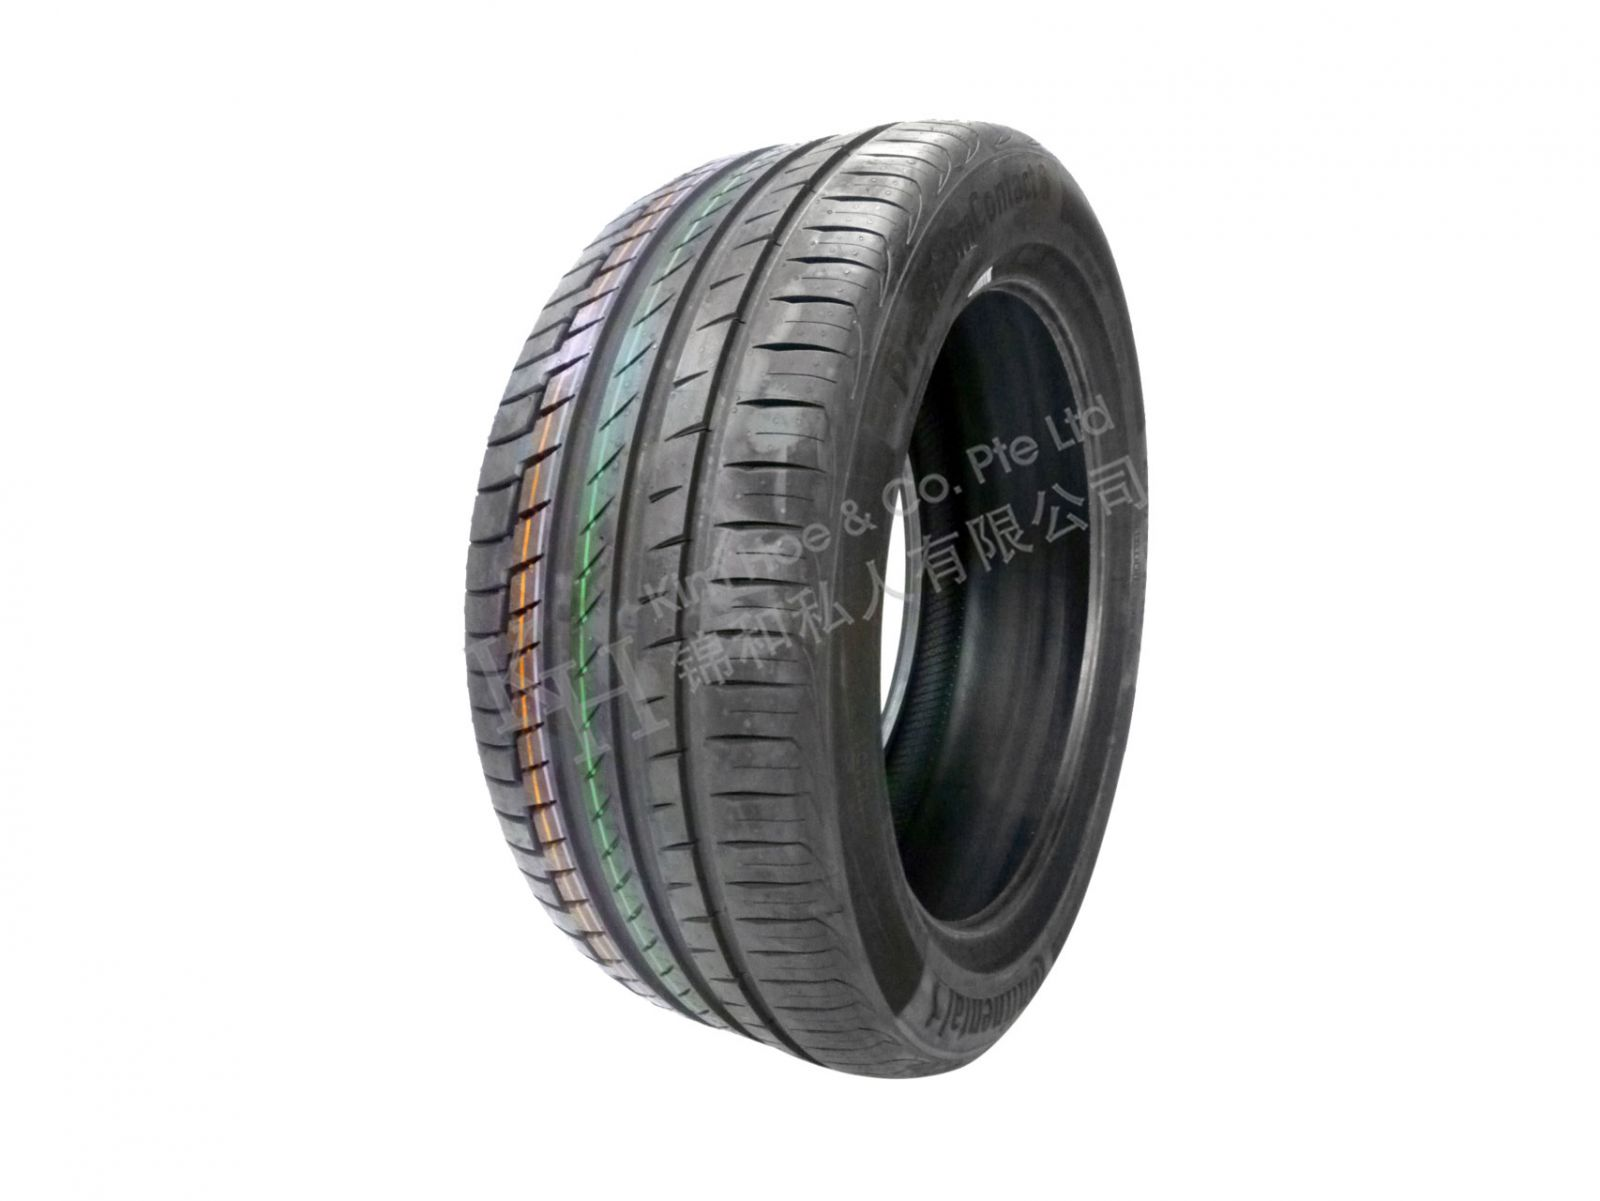 Continental ContiPremiumContact 6 225/60/R18 Tyre